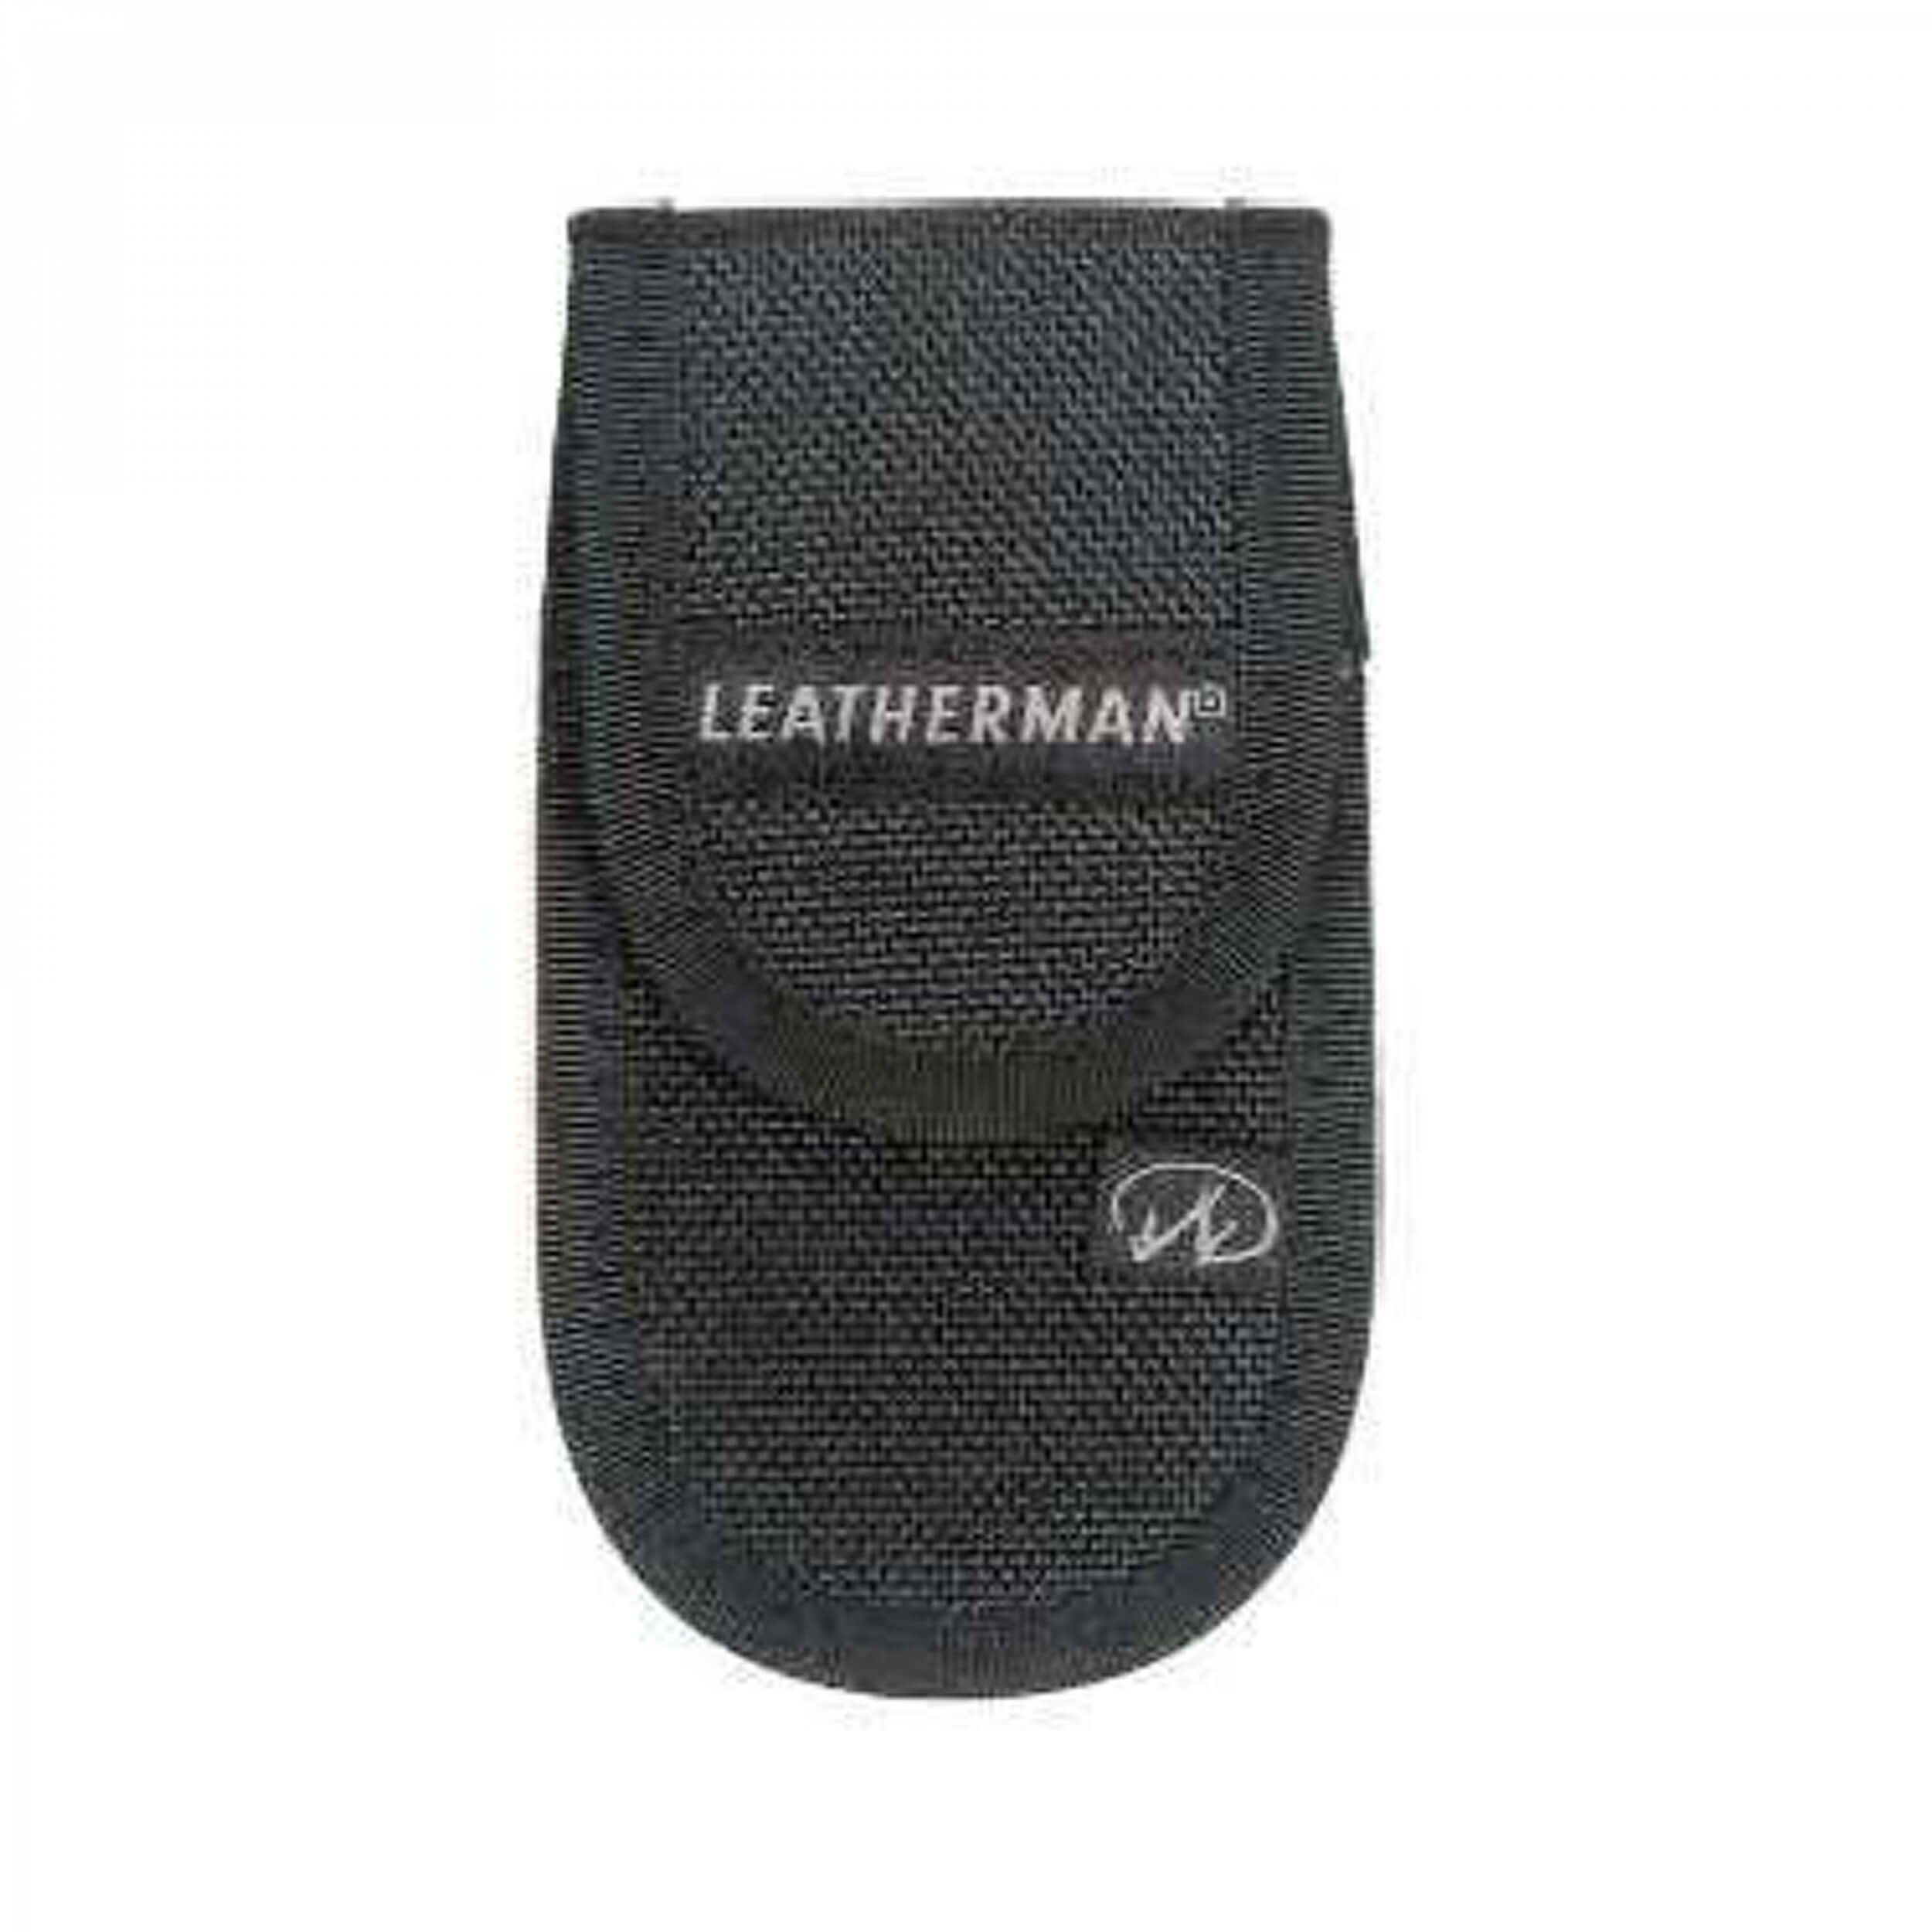 Leatherman Standard Nylon Sheath 4'' Rebar